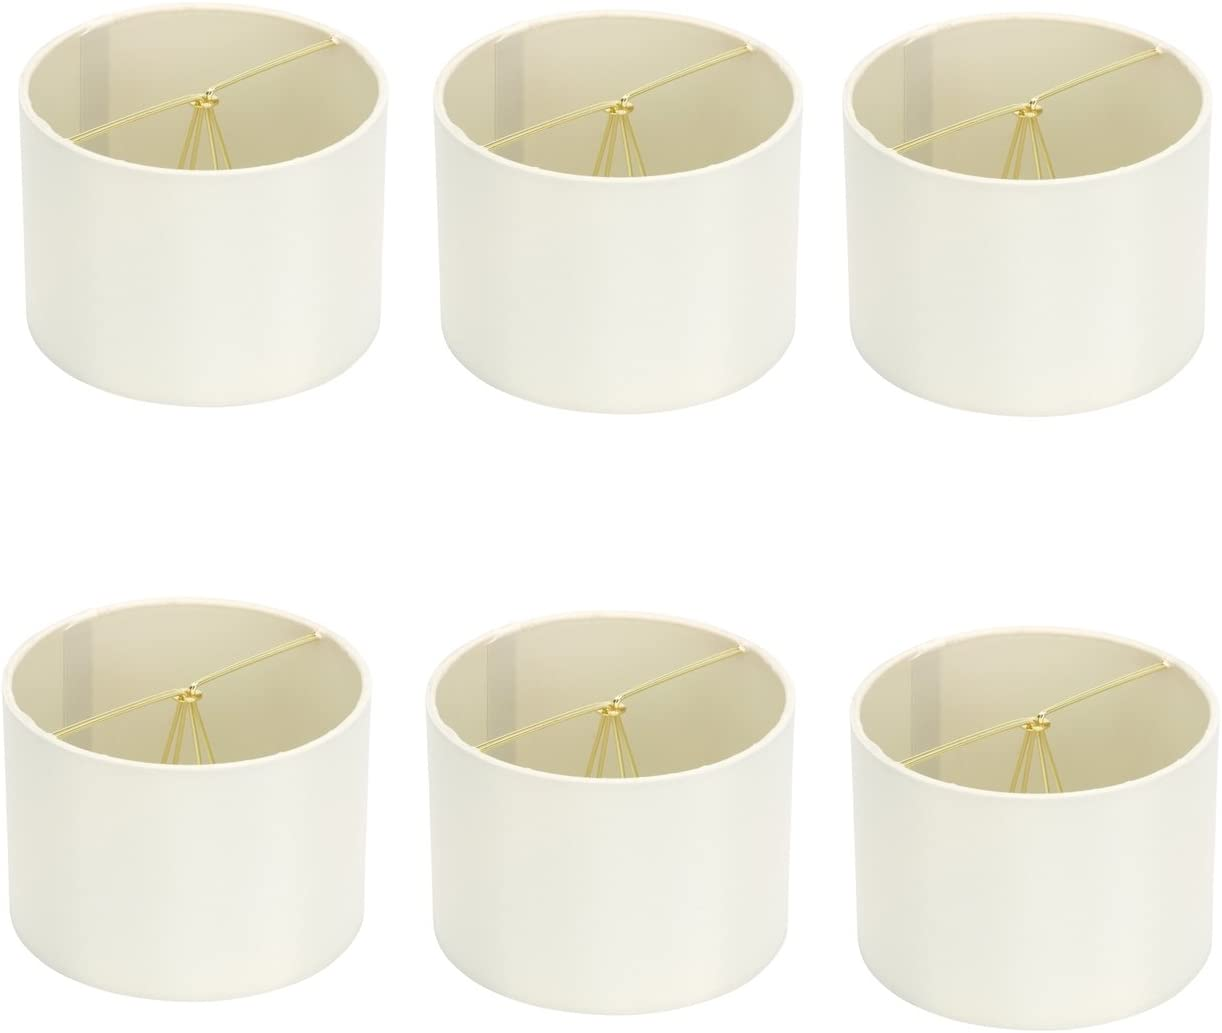 Upgradelights Eggshell Silk 6 Inch Clip On Barrel Chandelier Lamp Shades Set of 6 6x6x4